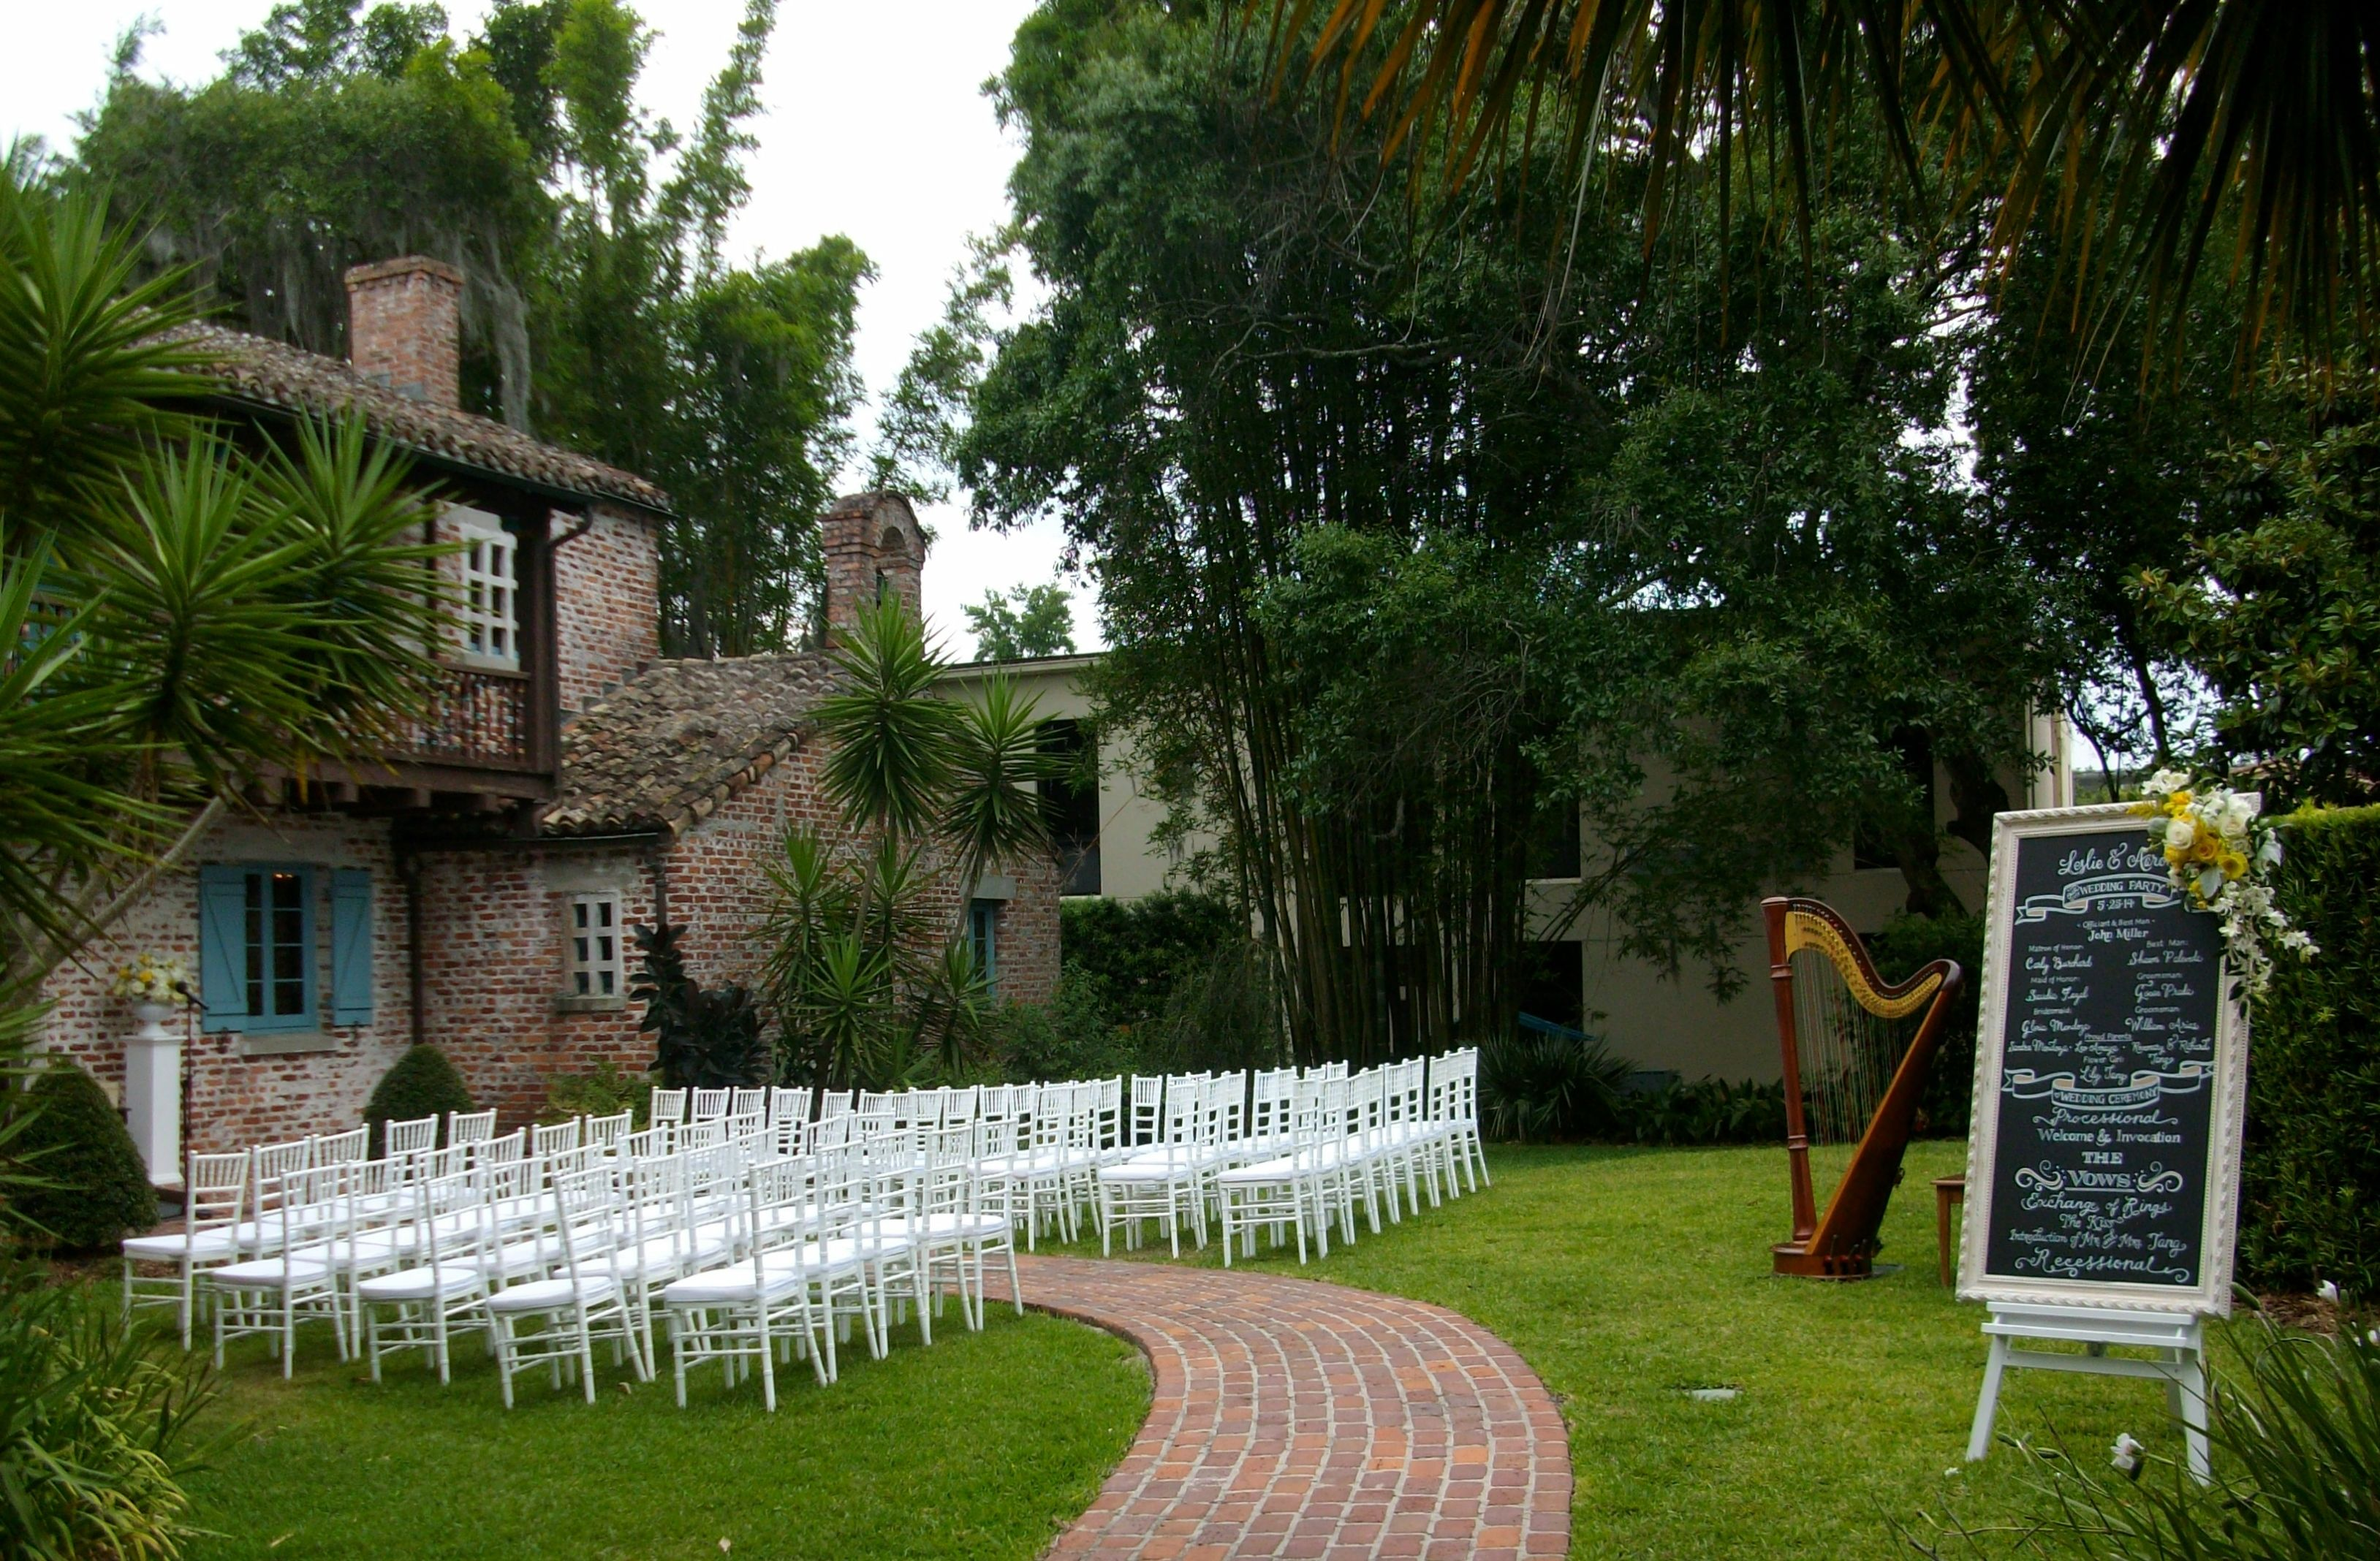 pretty outdoor wedding ceremony set up with program on chalkboard